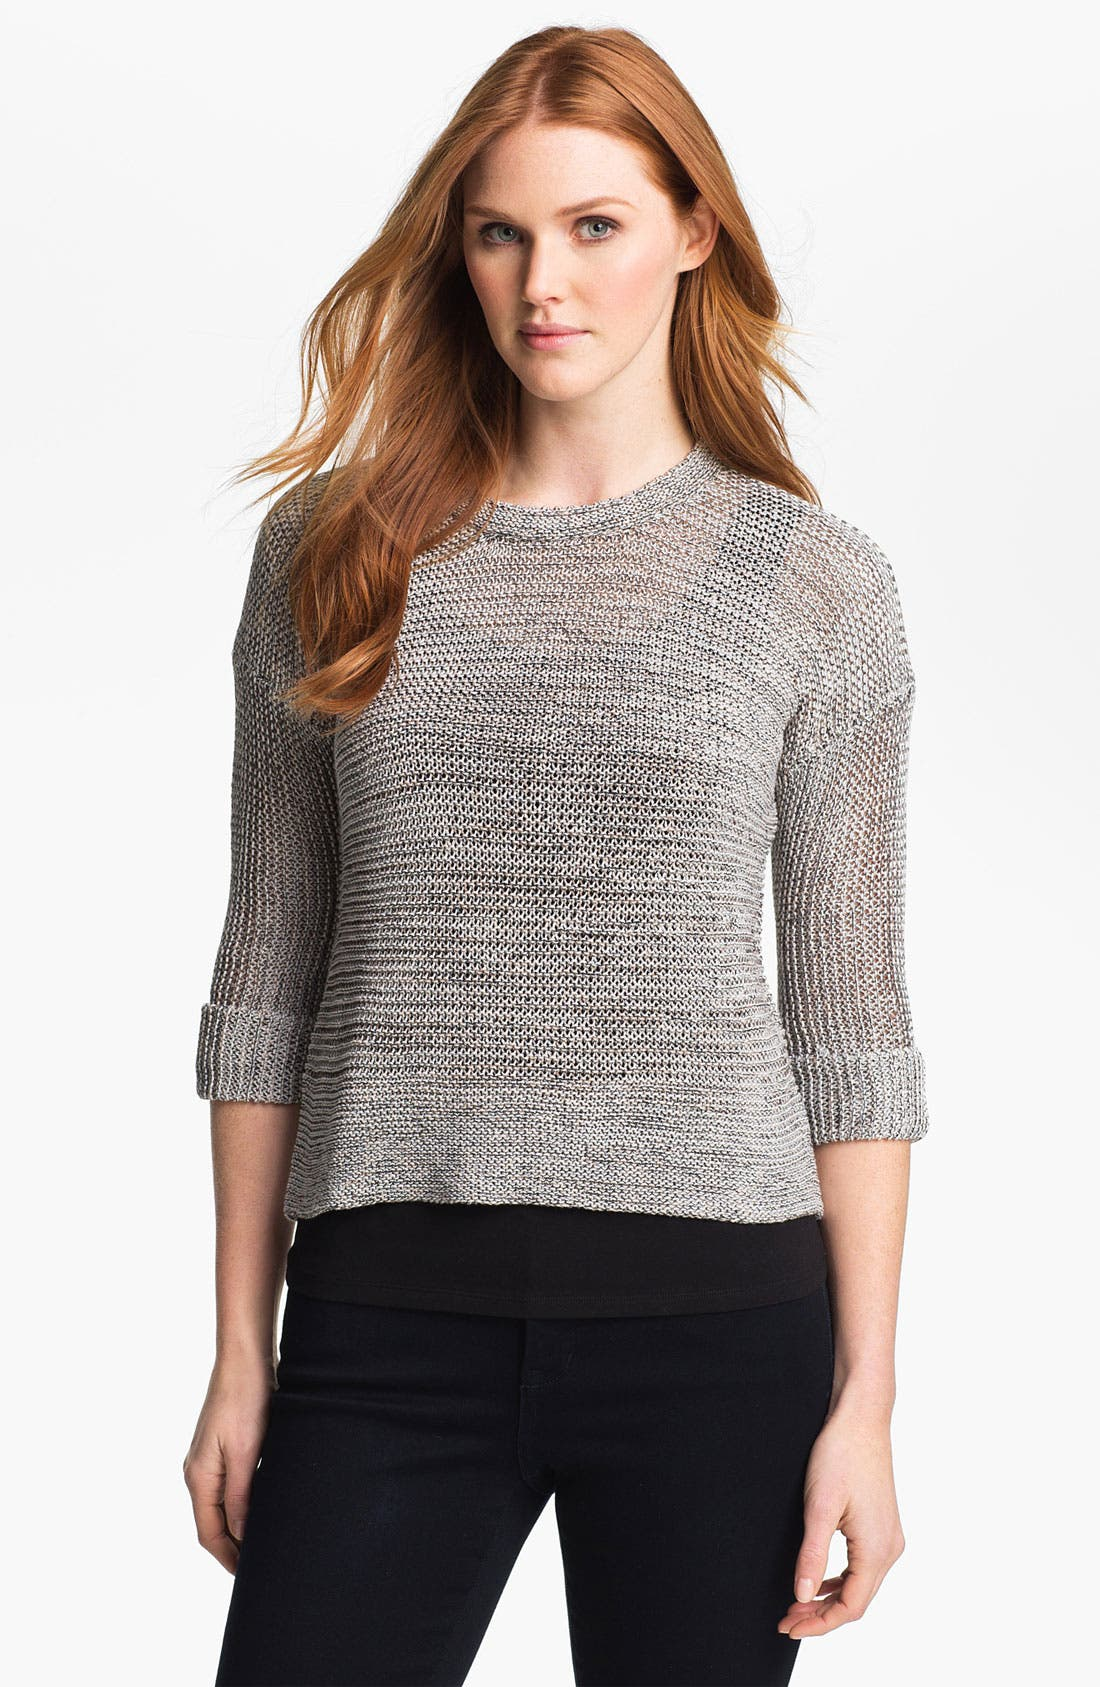 Main Image - Nic + Zoe Tape Knit Sweater (Online Exclusive)